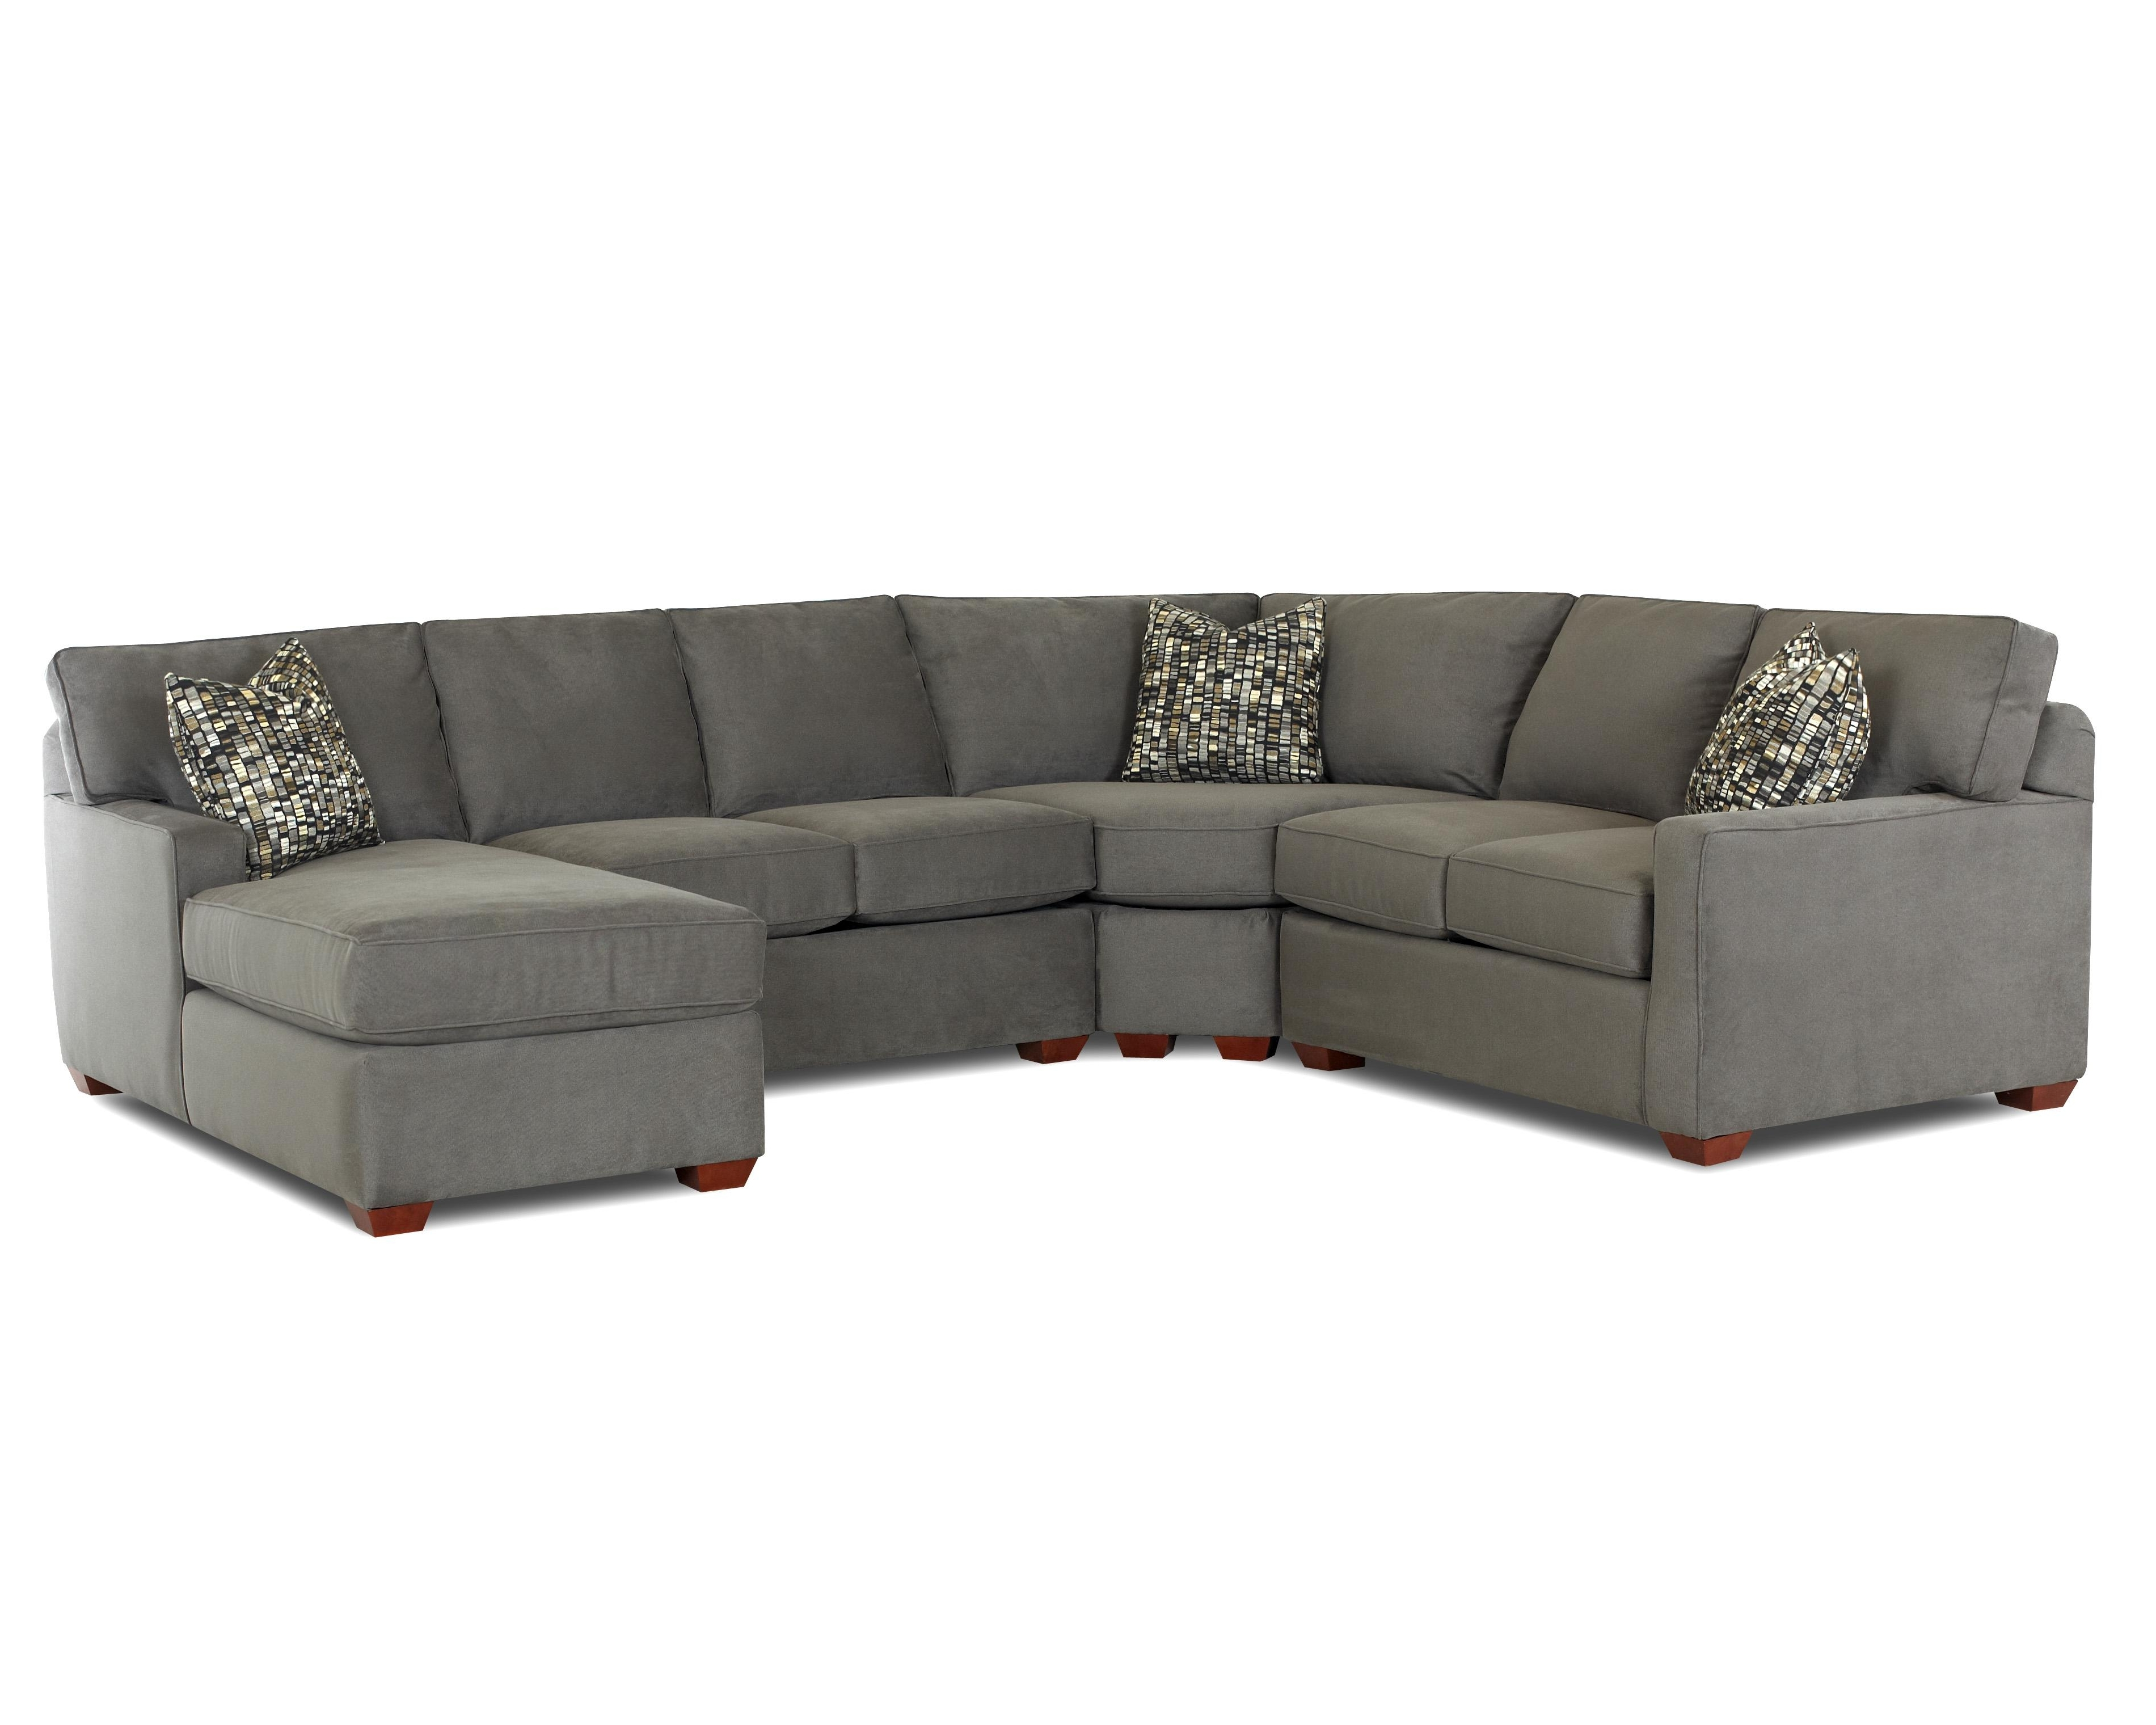 Well Known L Shaped Couches With Chaise With Regard To Contemporary L Shaped Sectional Sofa With Right Arm Facing Chaise (View 15 of 15)